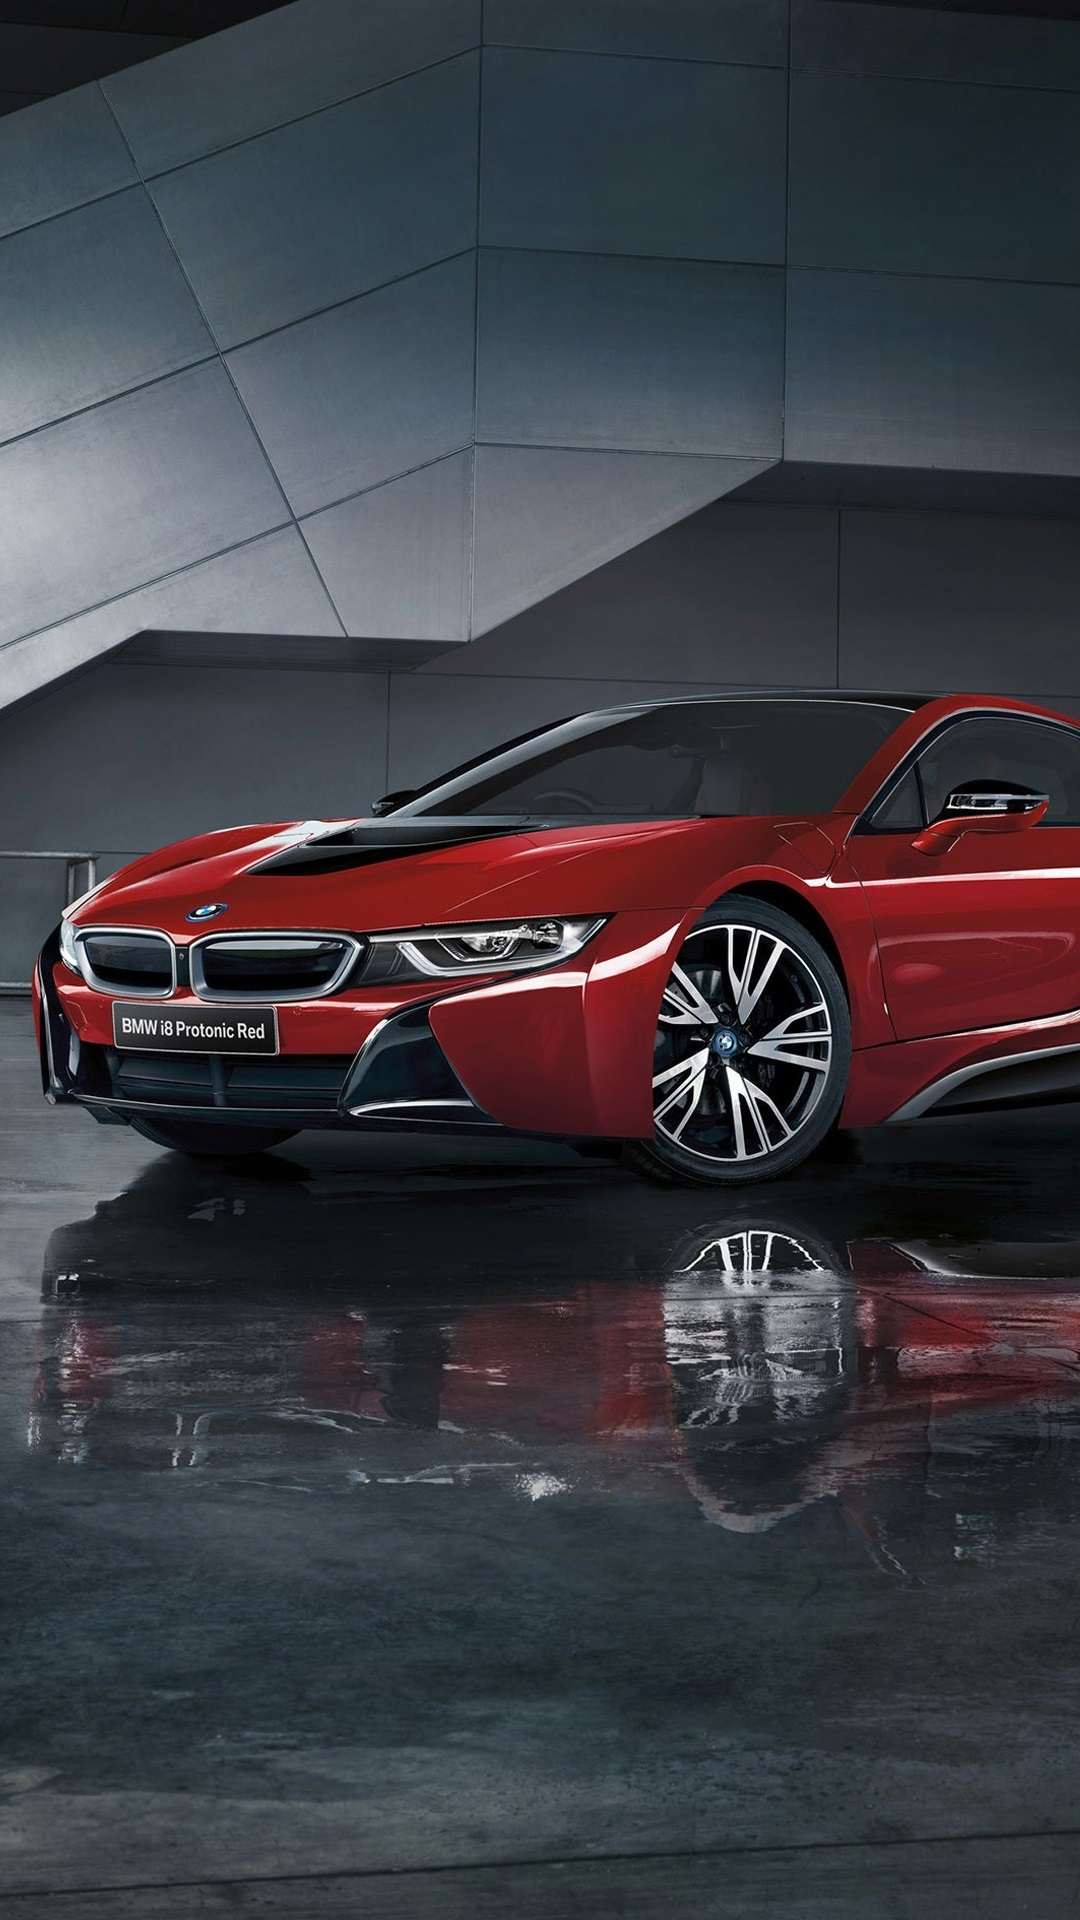 Bmw I8 Protonic Red Car 1080x1920 Iphone 8 7 6 6s Plus